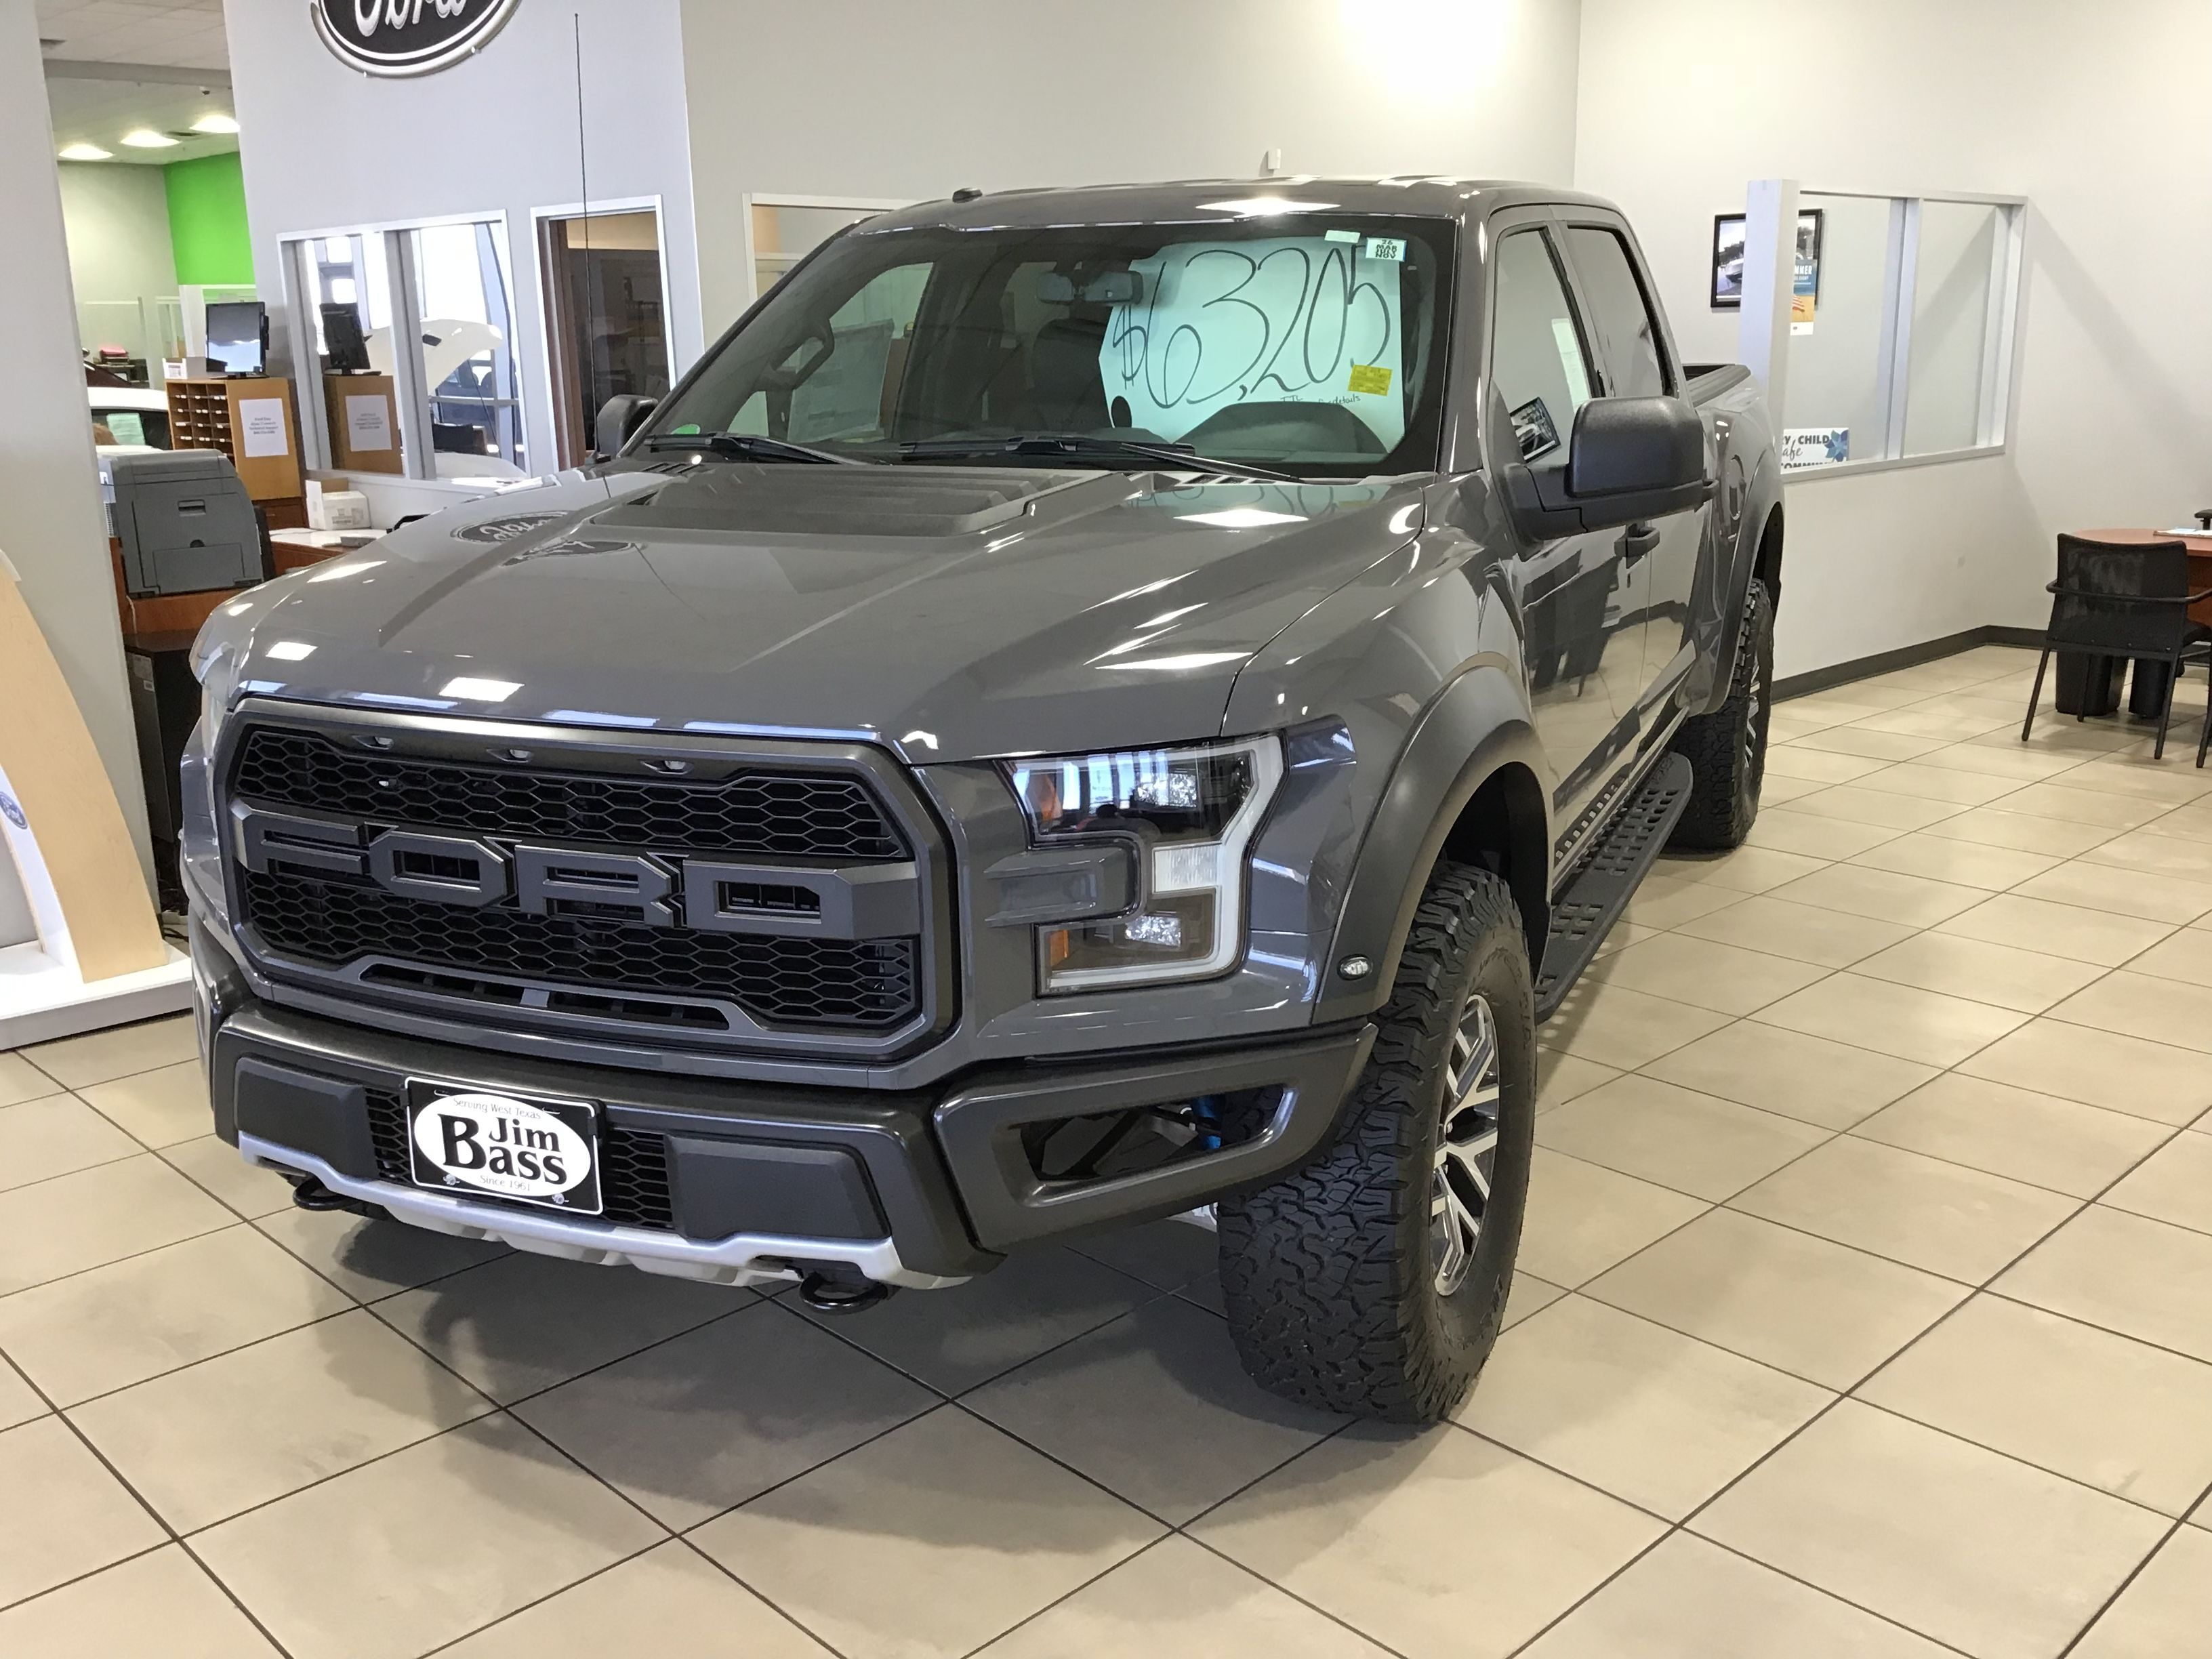 Check Out This Beautiful Ford Raptor Ford Raptor Ford Trucks